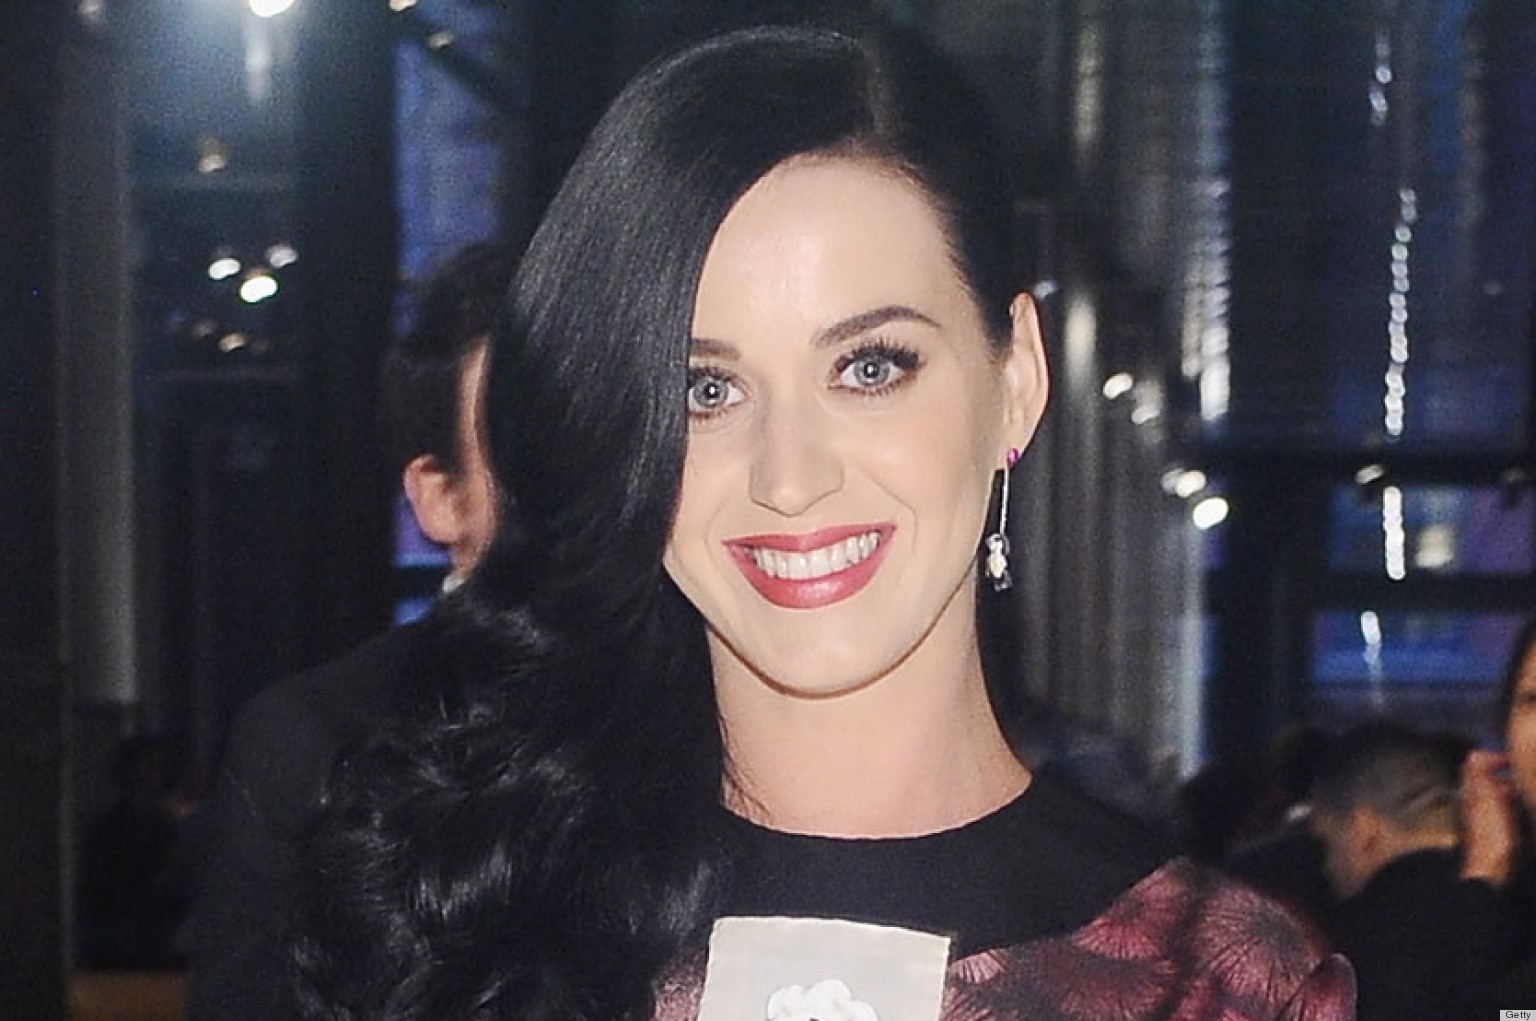 PHOTOS: Can Katy Perry Pull Off This Runway Look?